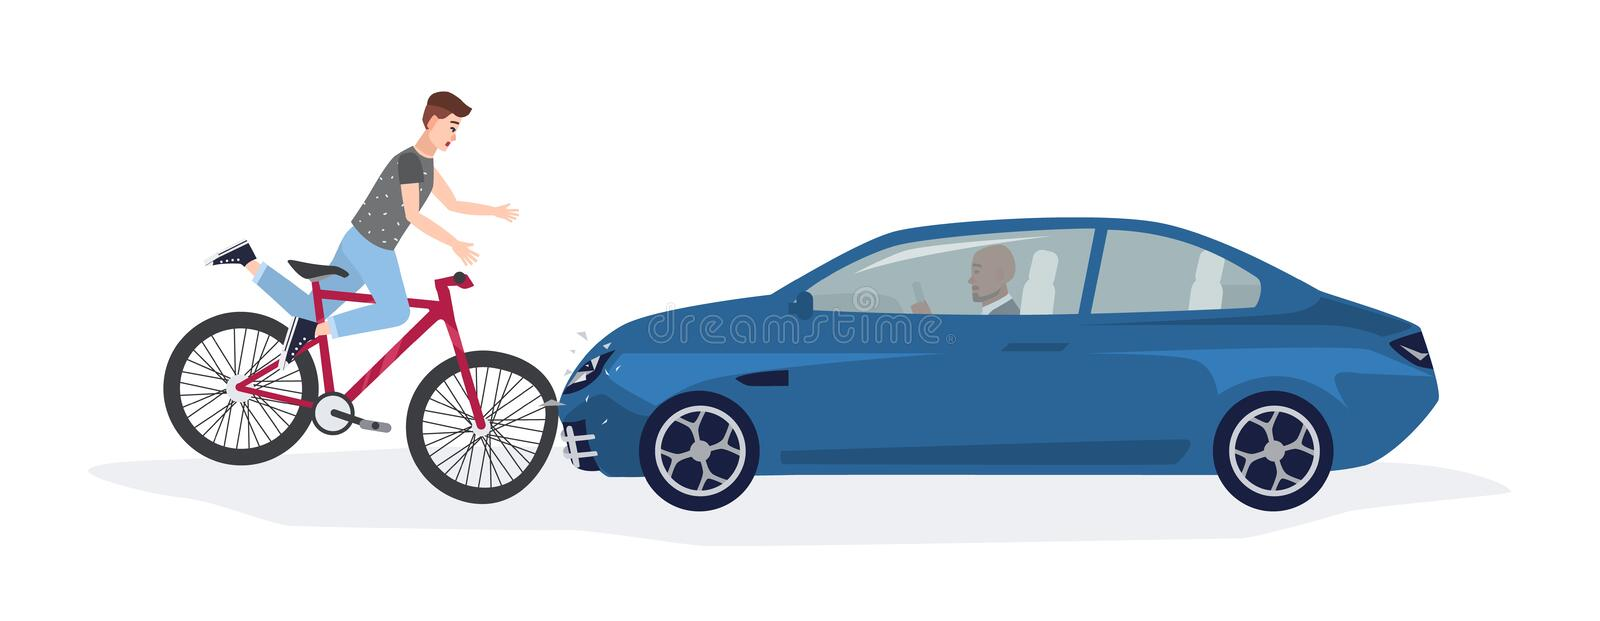 Automobile knocking down boy riding on bike. Head-on road collision with bicyclist involved. Car or traffic accident royalty free illustration